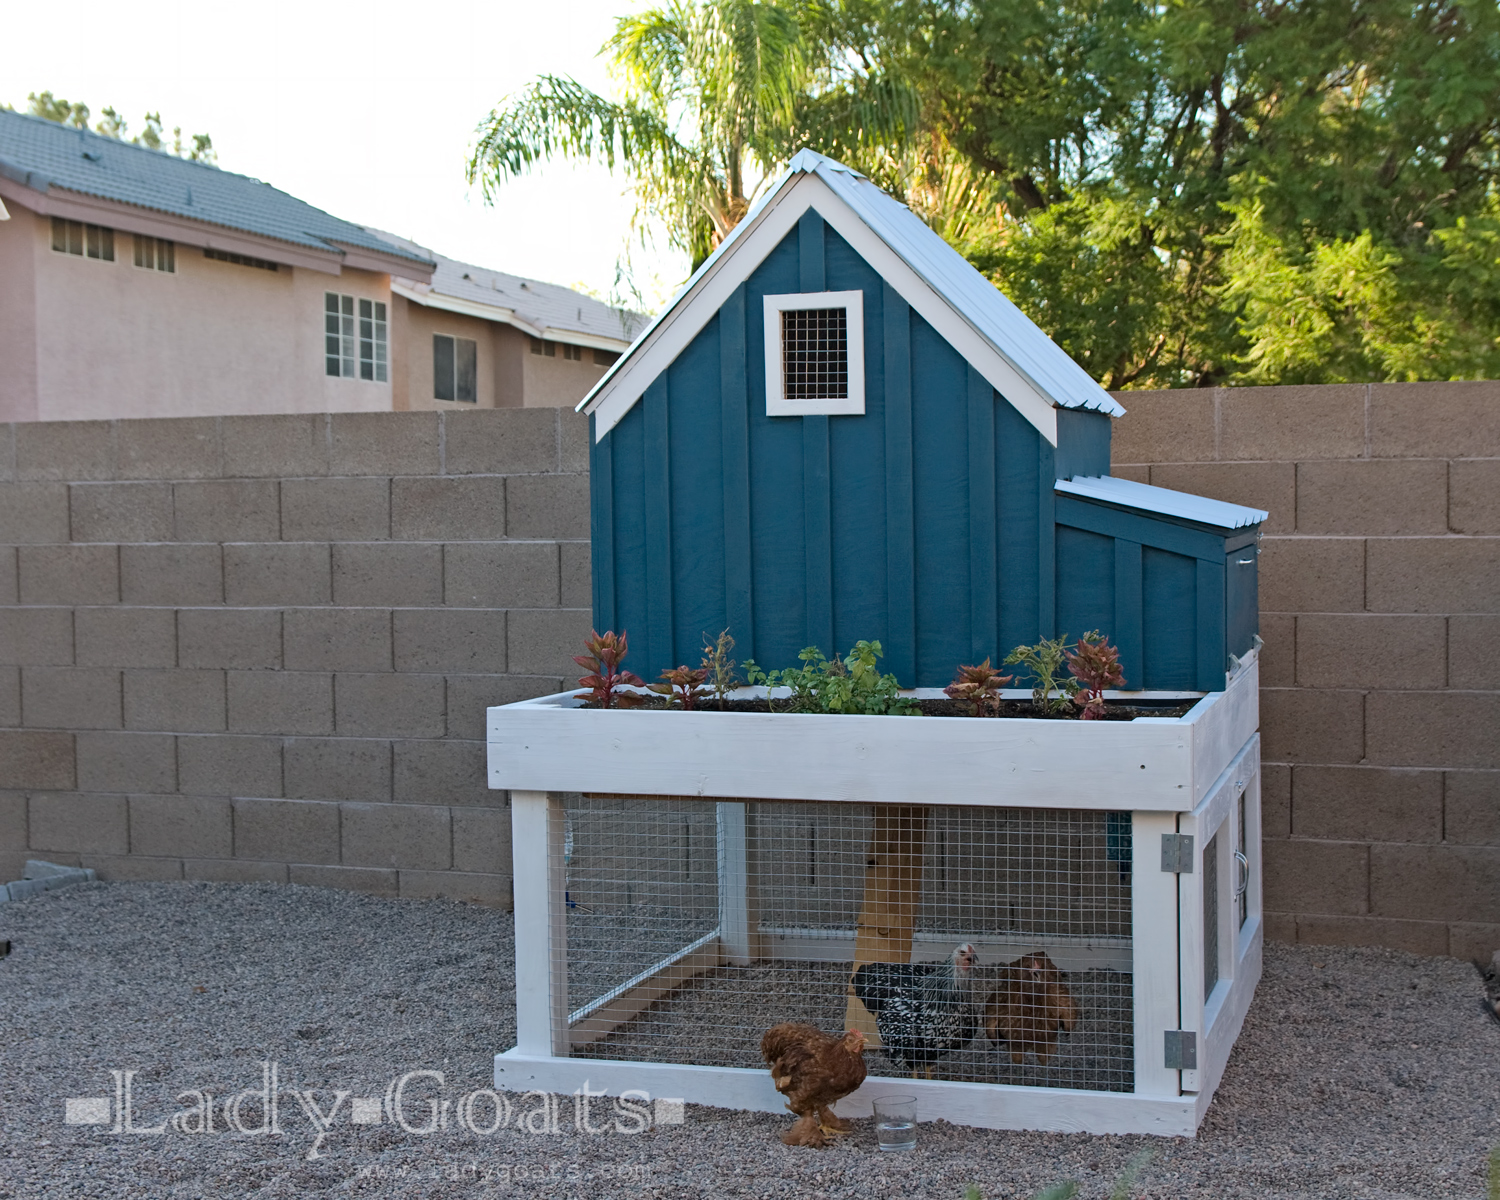 Chicken House lady goats: building a chicken house